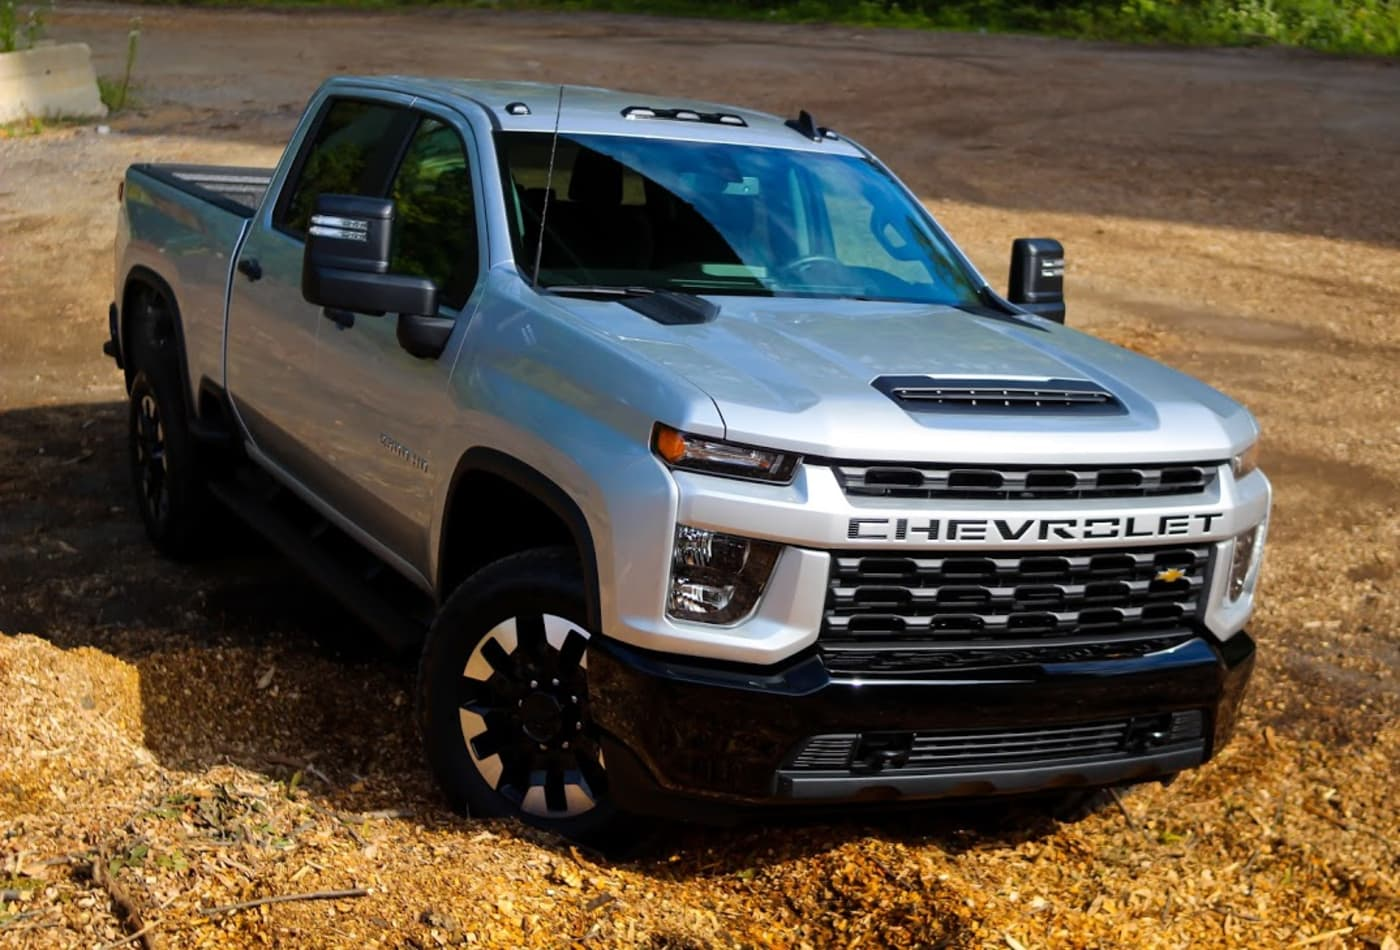 GM's 2019 sales decline after discontinuing some models and demand falls for trucks, SUVs